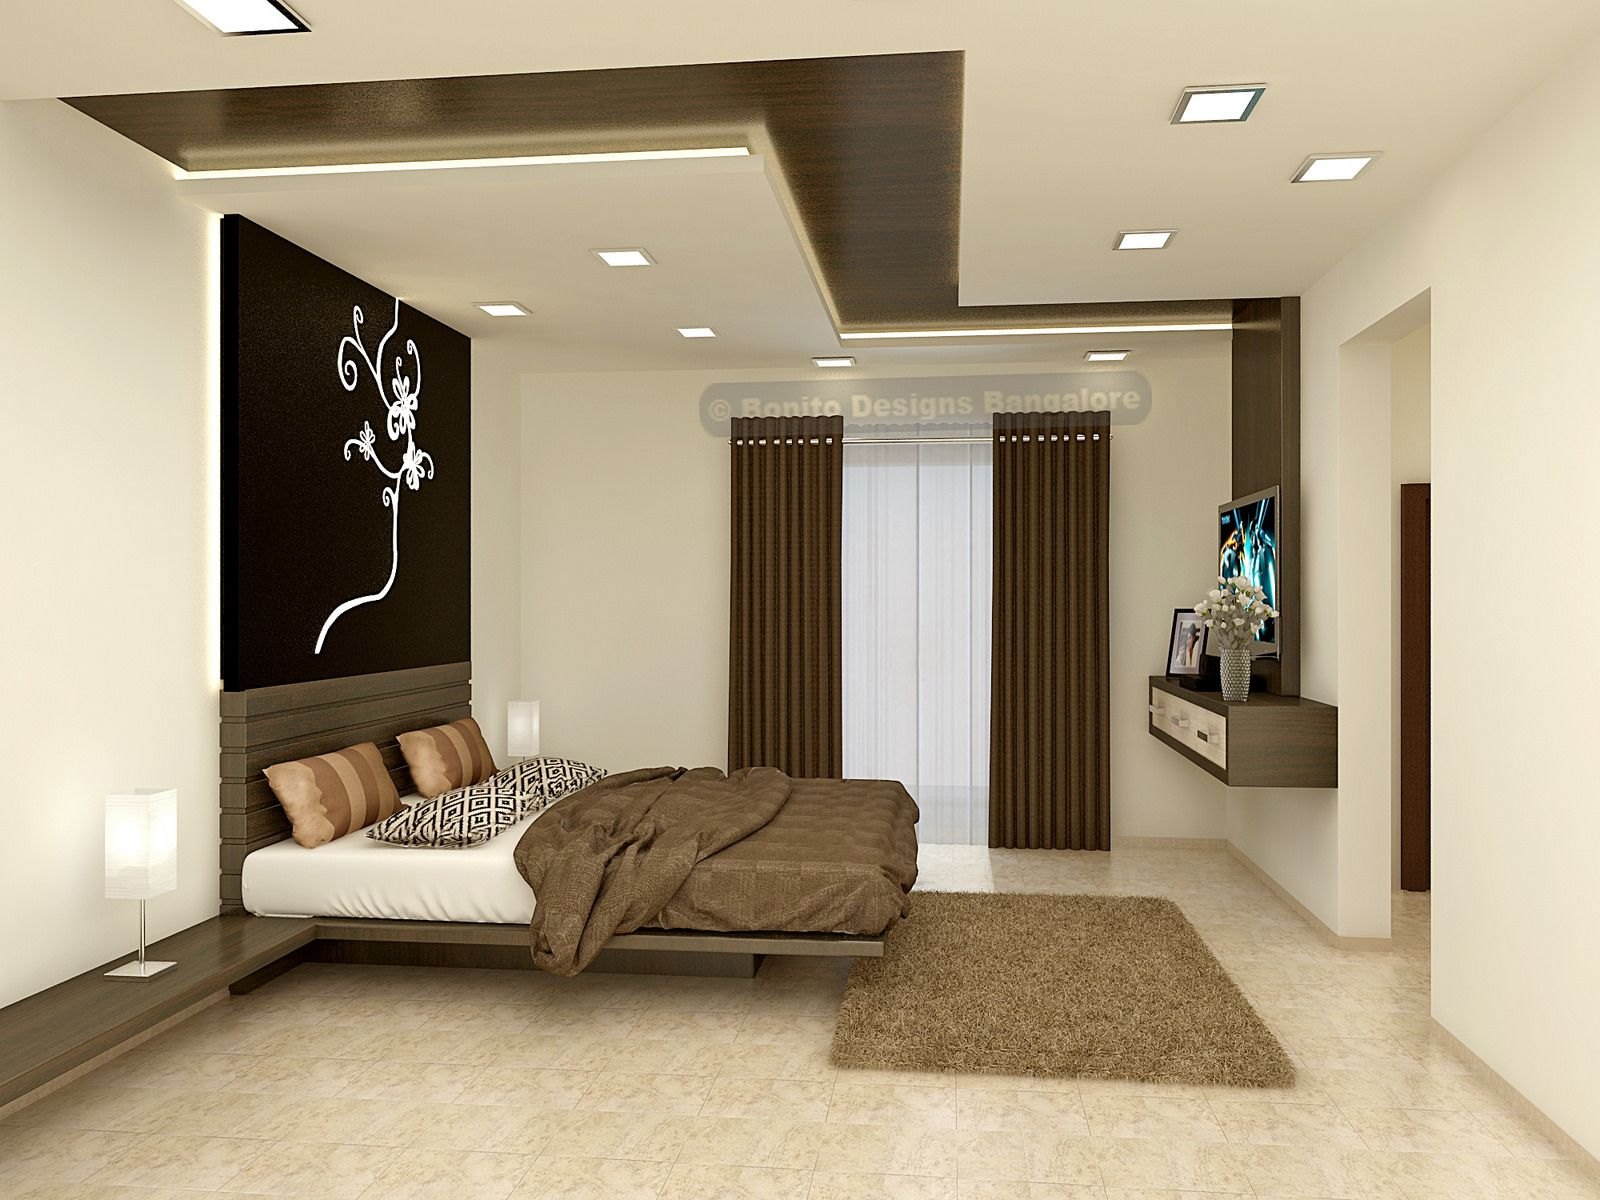 Ceiling Designs For Bedrooms Impressive Sandepmbr 1  Ceilings Bedrooms And Ceiling Design Ideas